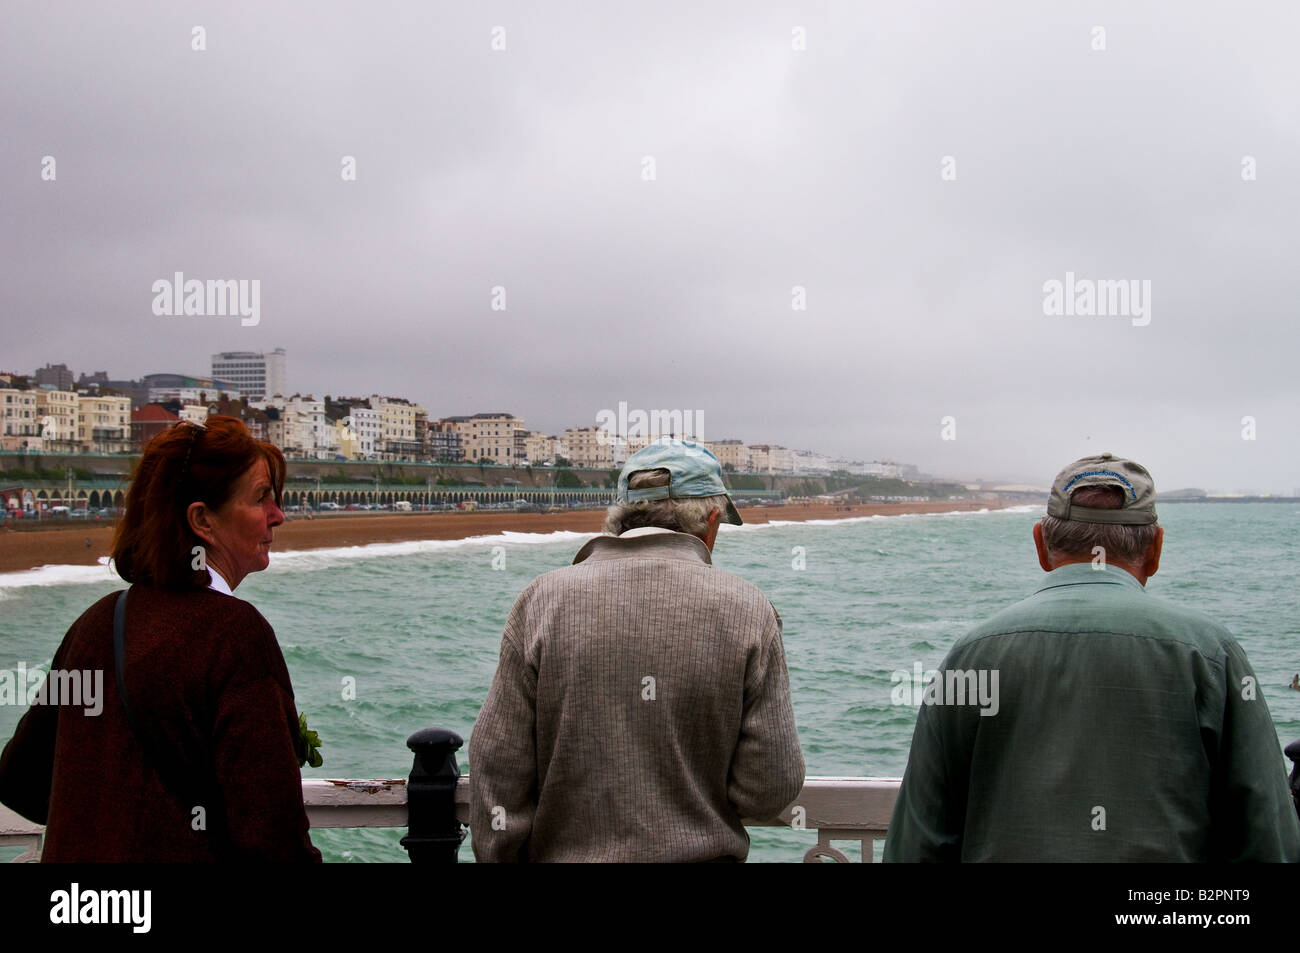 Three people standing on Brighton Pier in West Sussex on a windy overcast day. - Stock Image